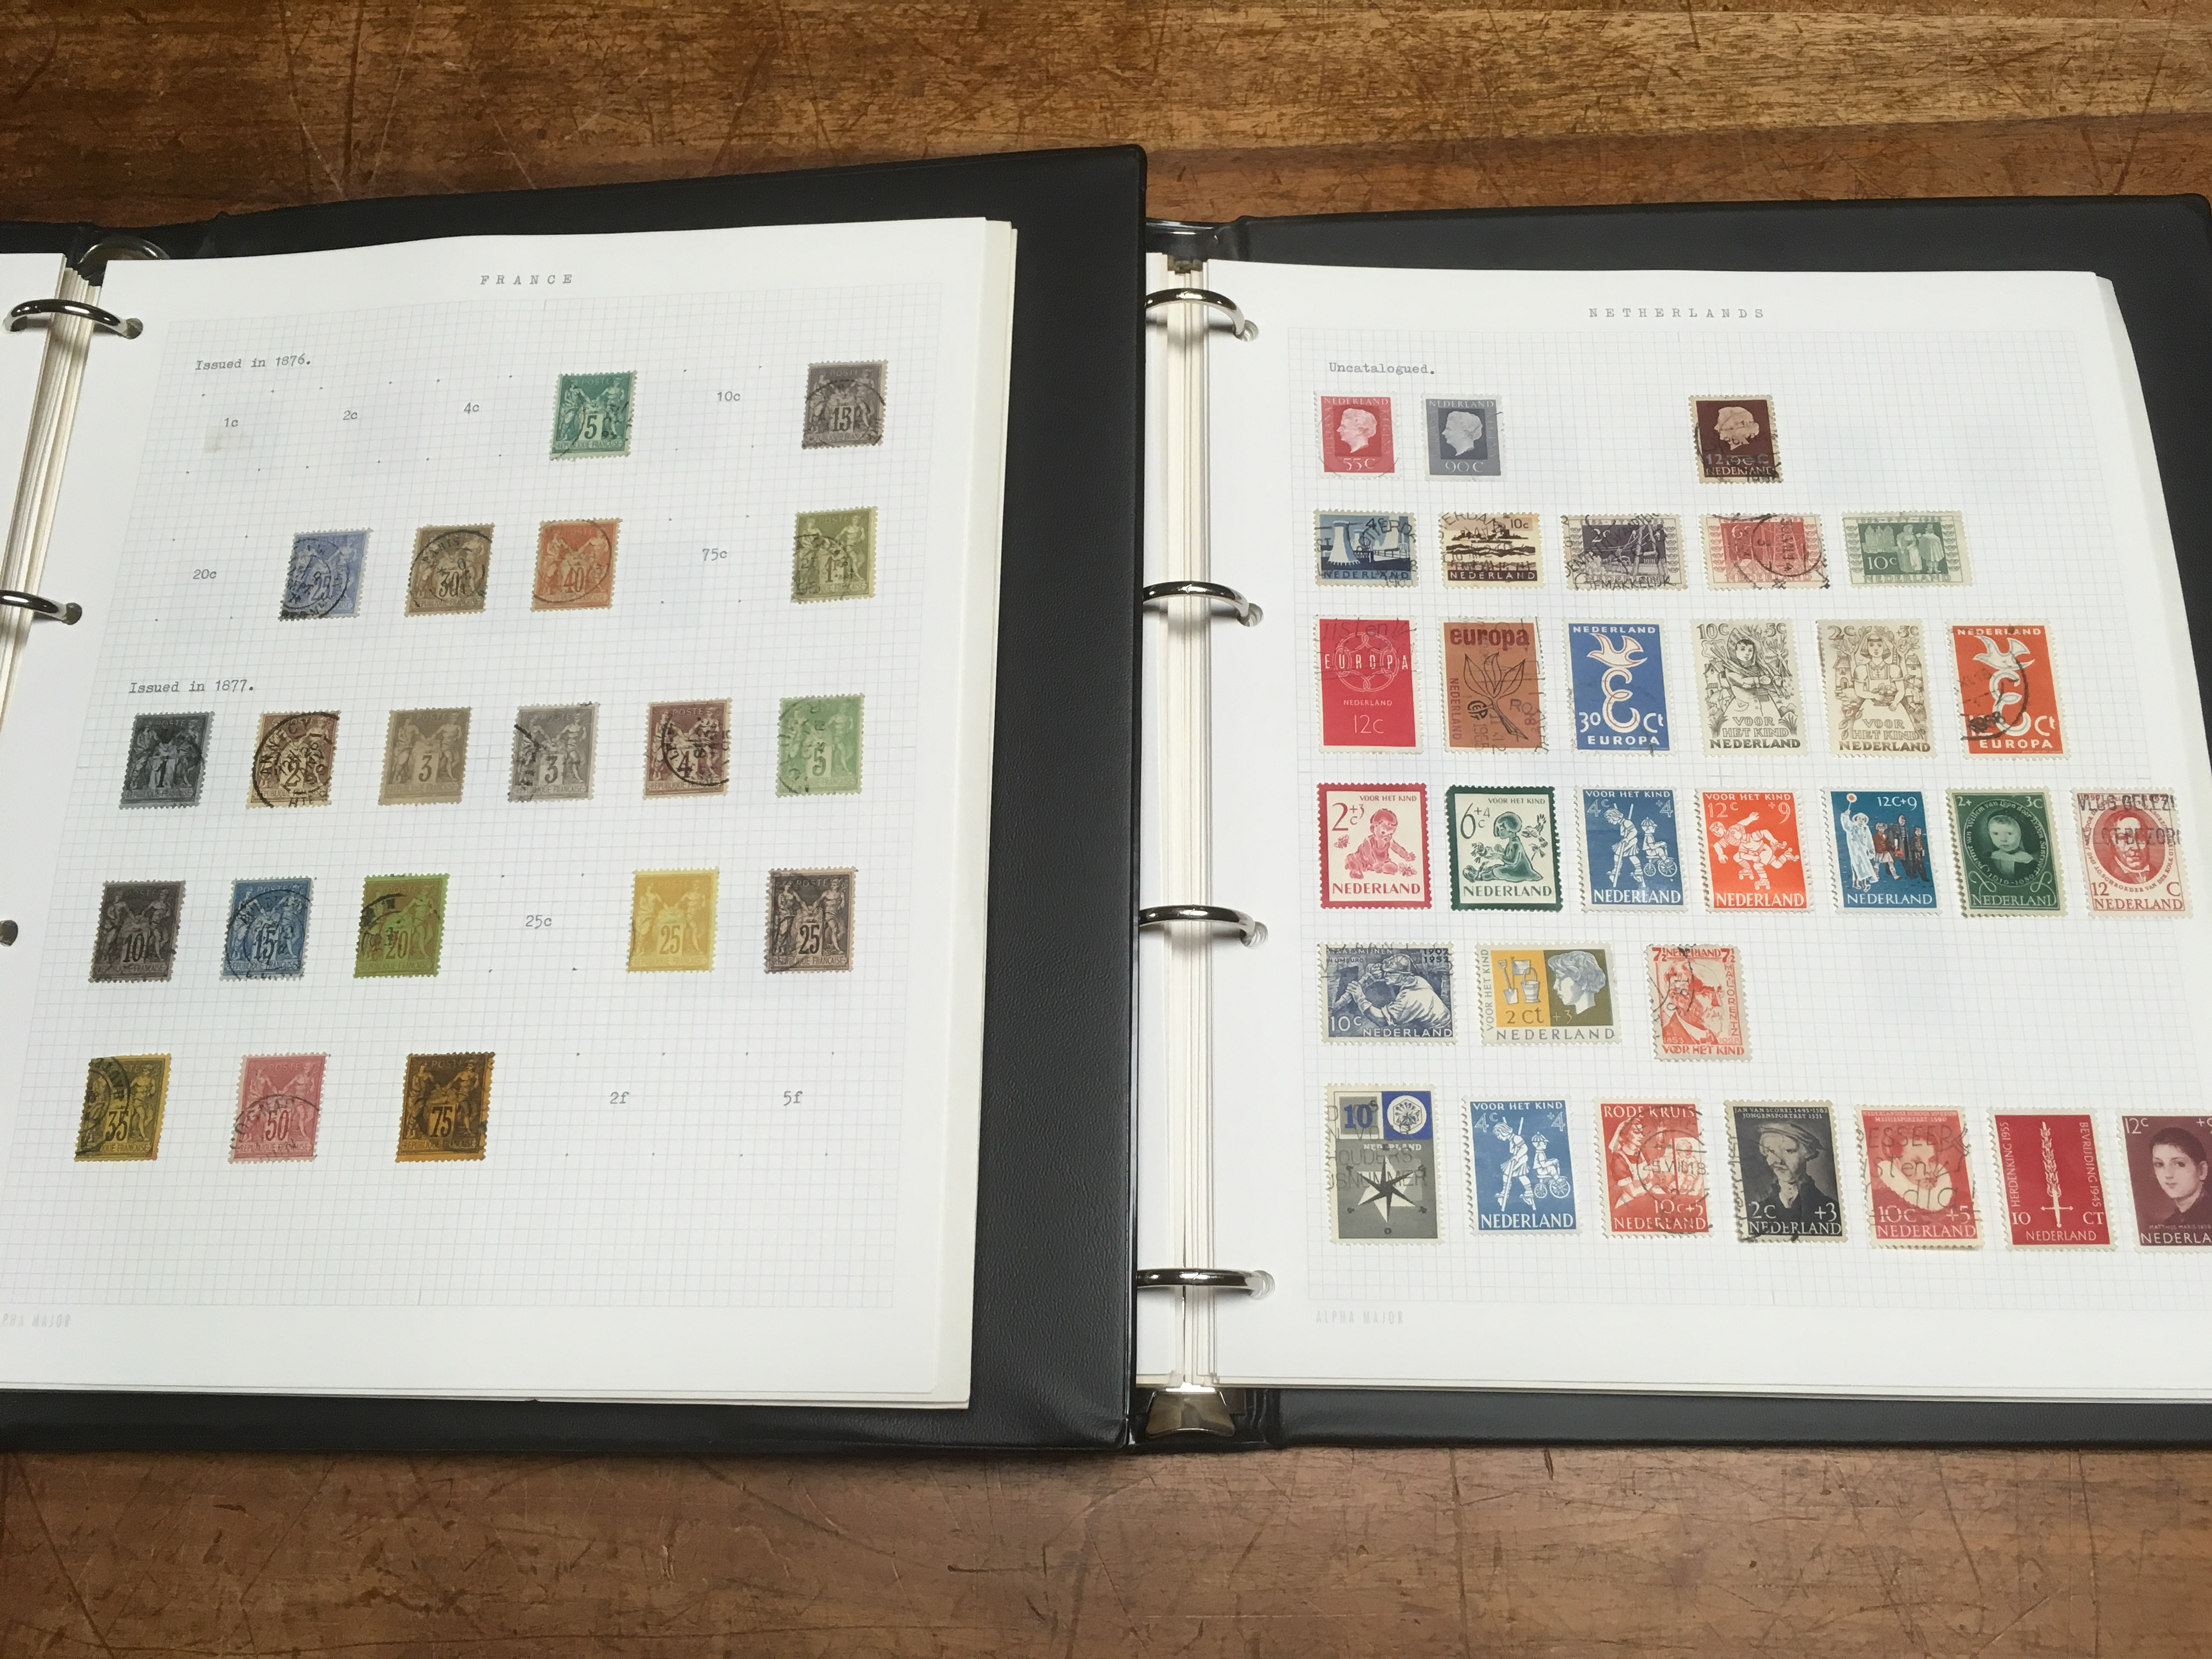 BOX WITH FOREIGN COLLECTION IN TWO BINDE - Image 3 of 3